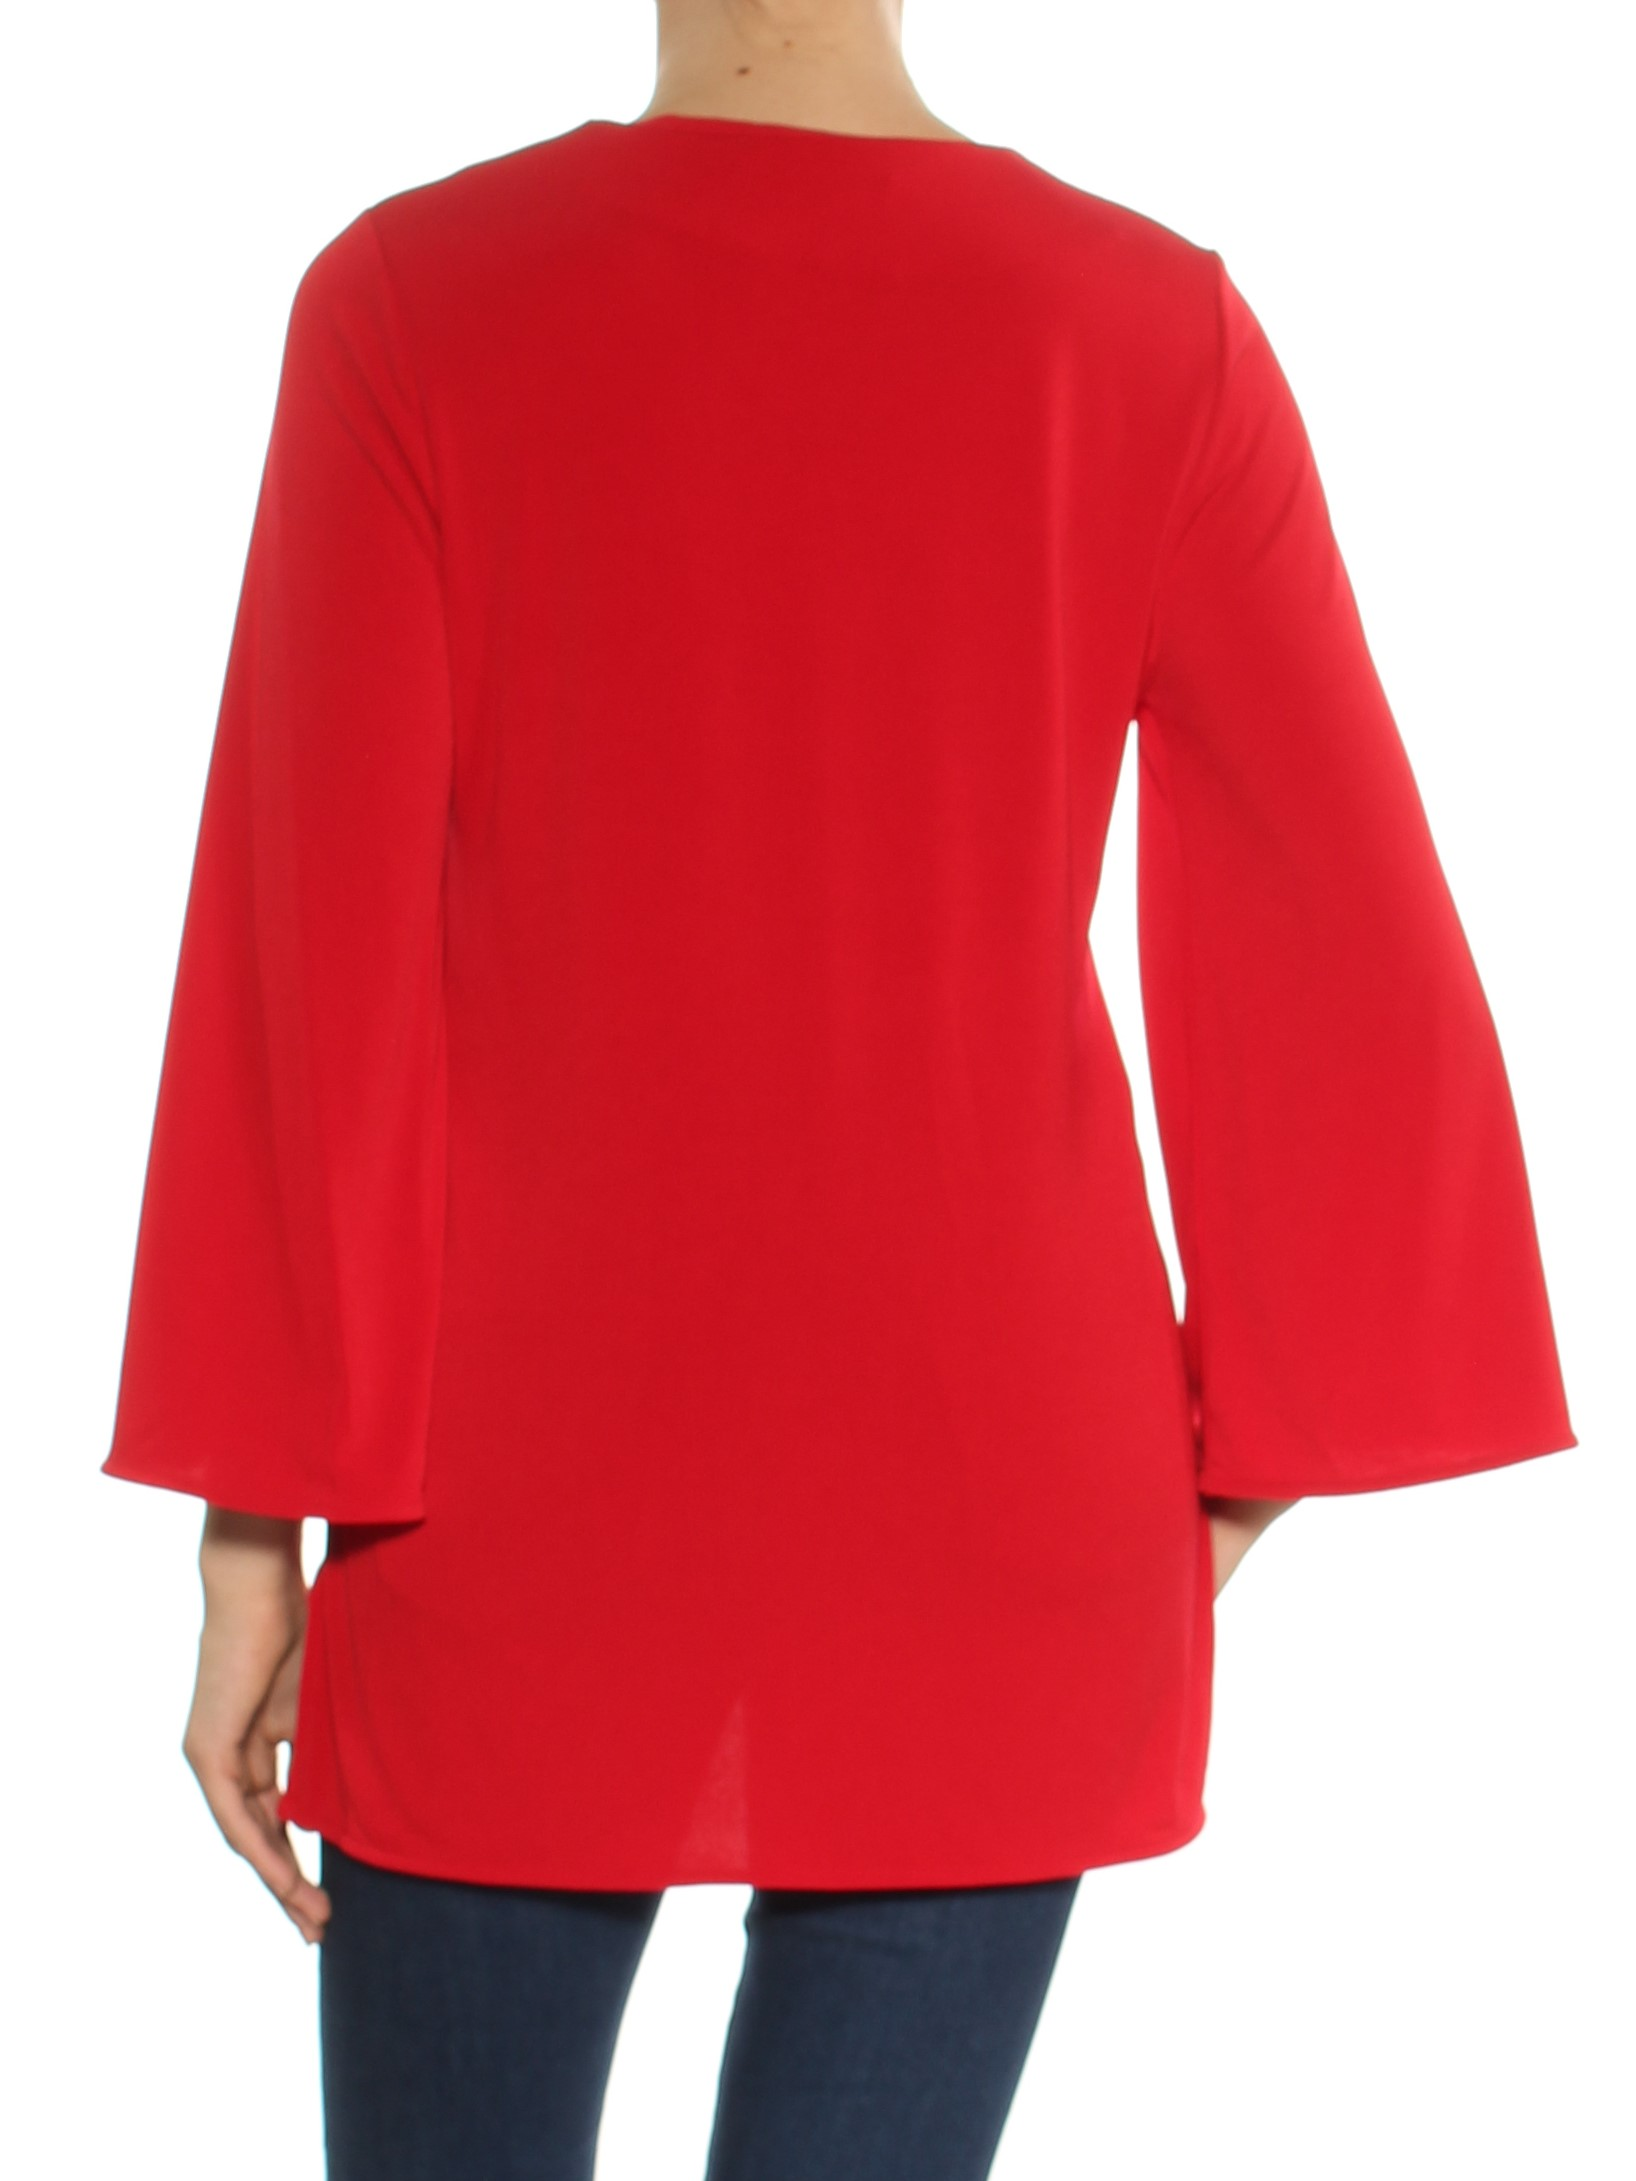 c53ce18114 Ralph Lauren Womens Red Bell Sleeve Keyhole Tunic Top Size: M